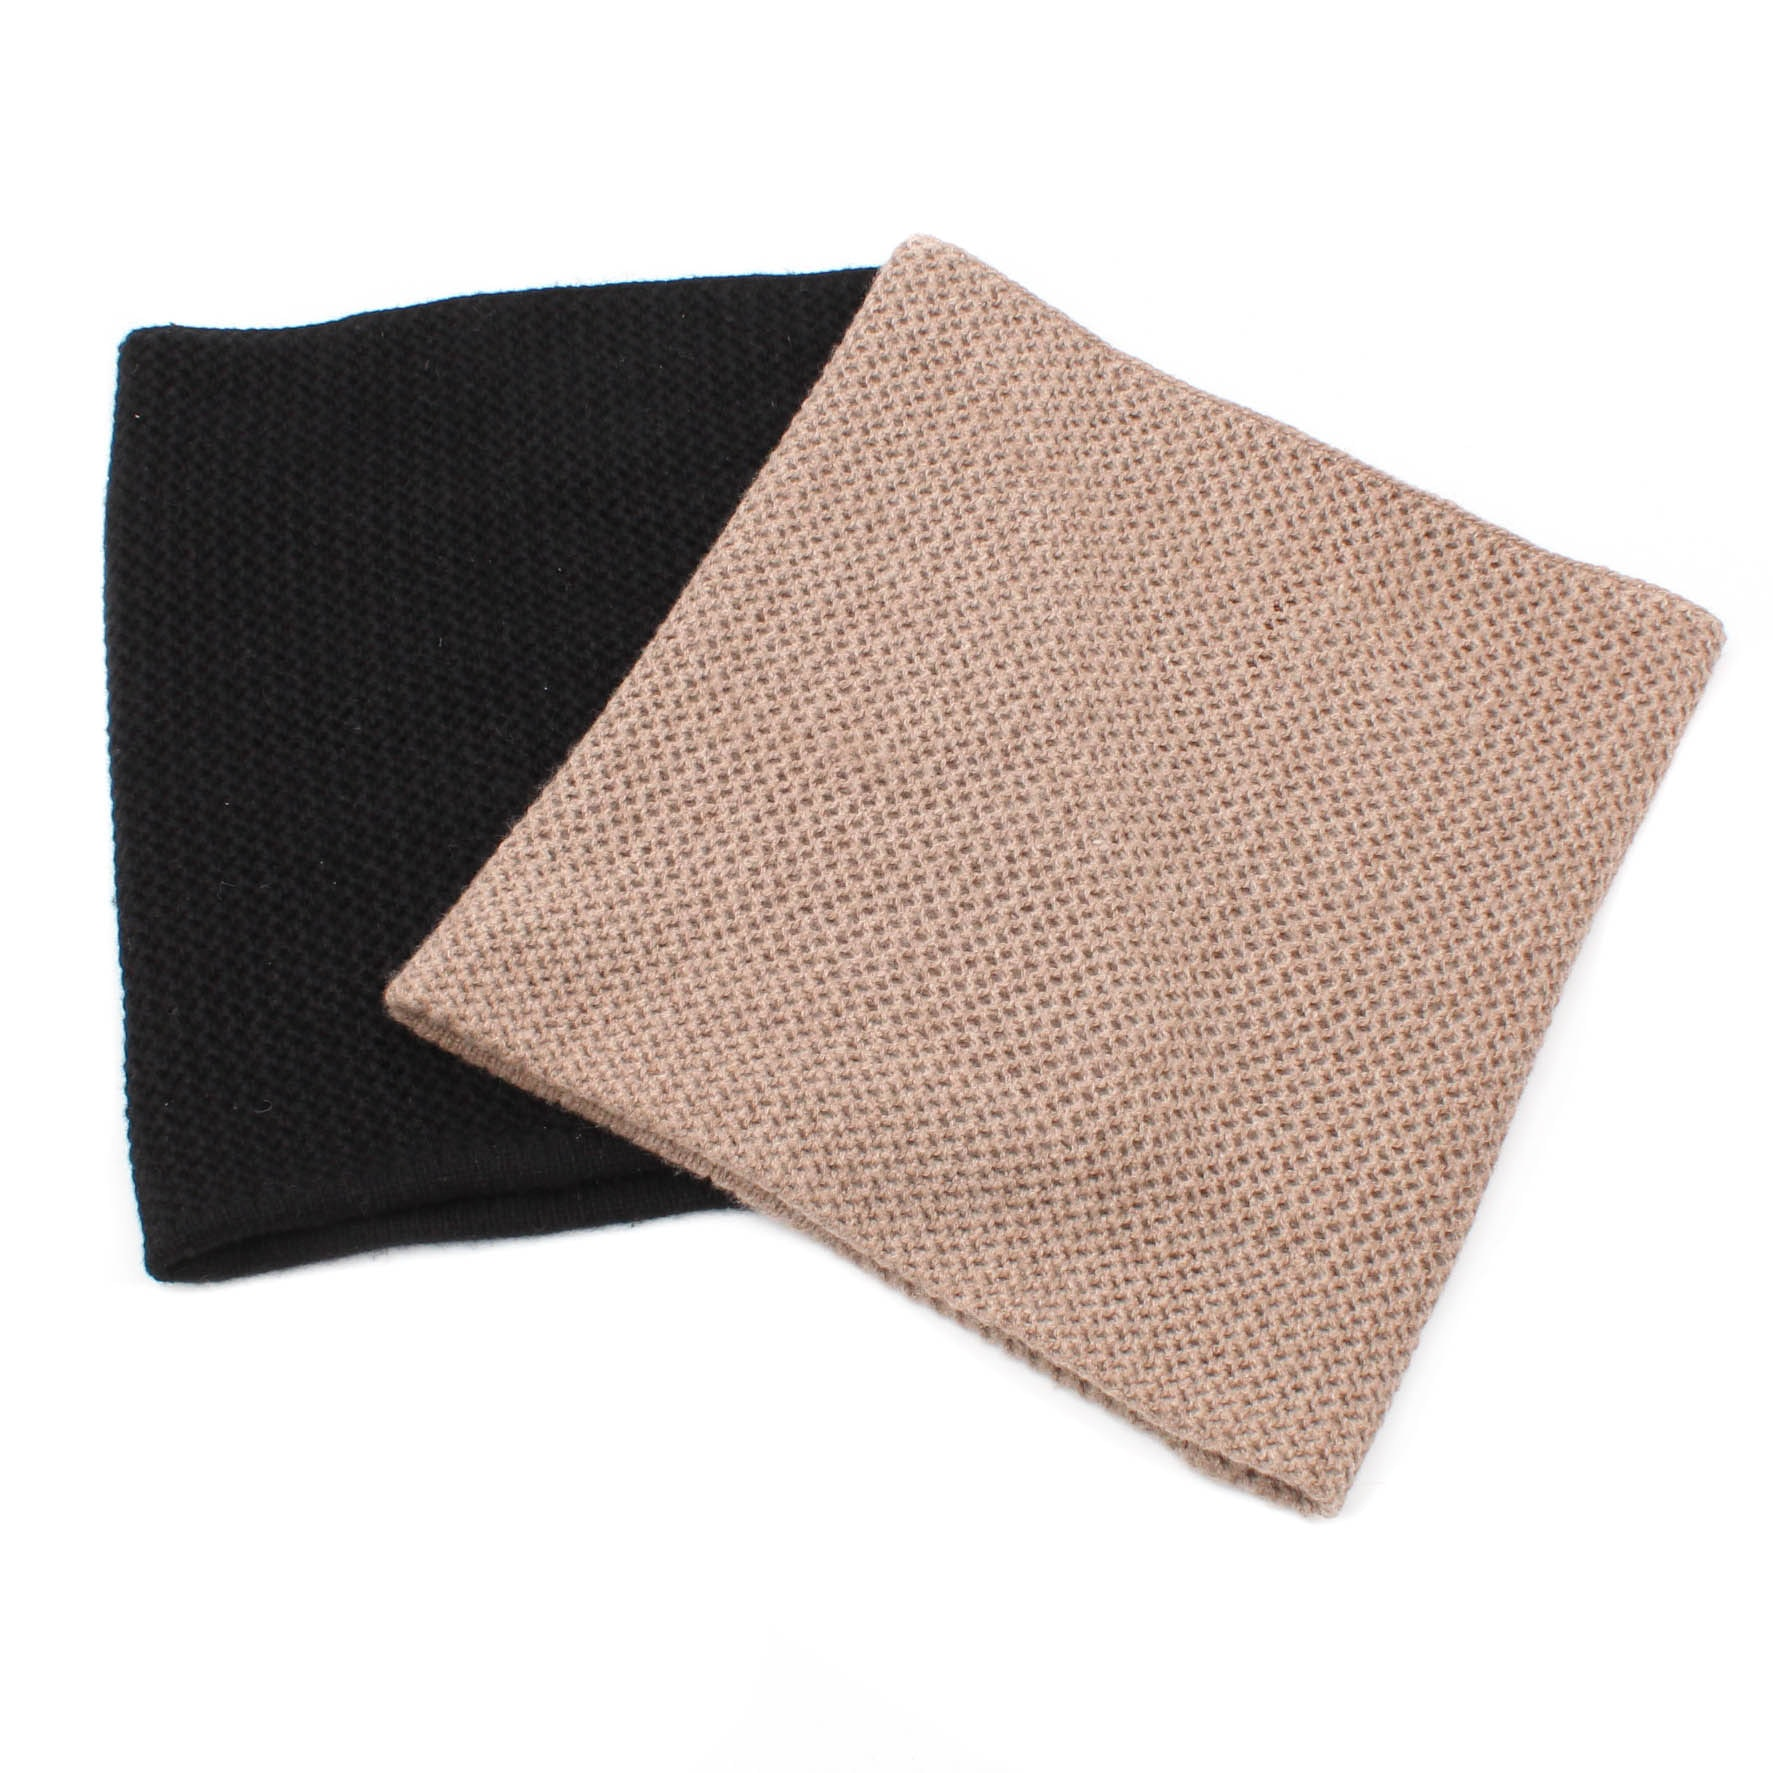 Portolano Cashmere Knit Infinity Scarves in Beige and Black